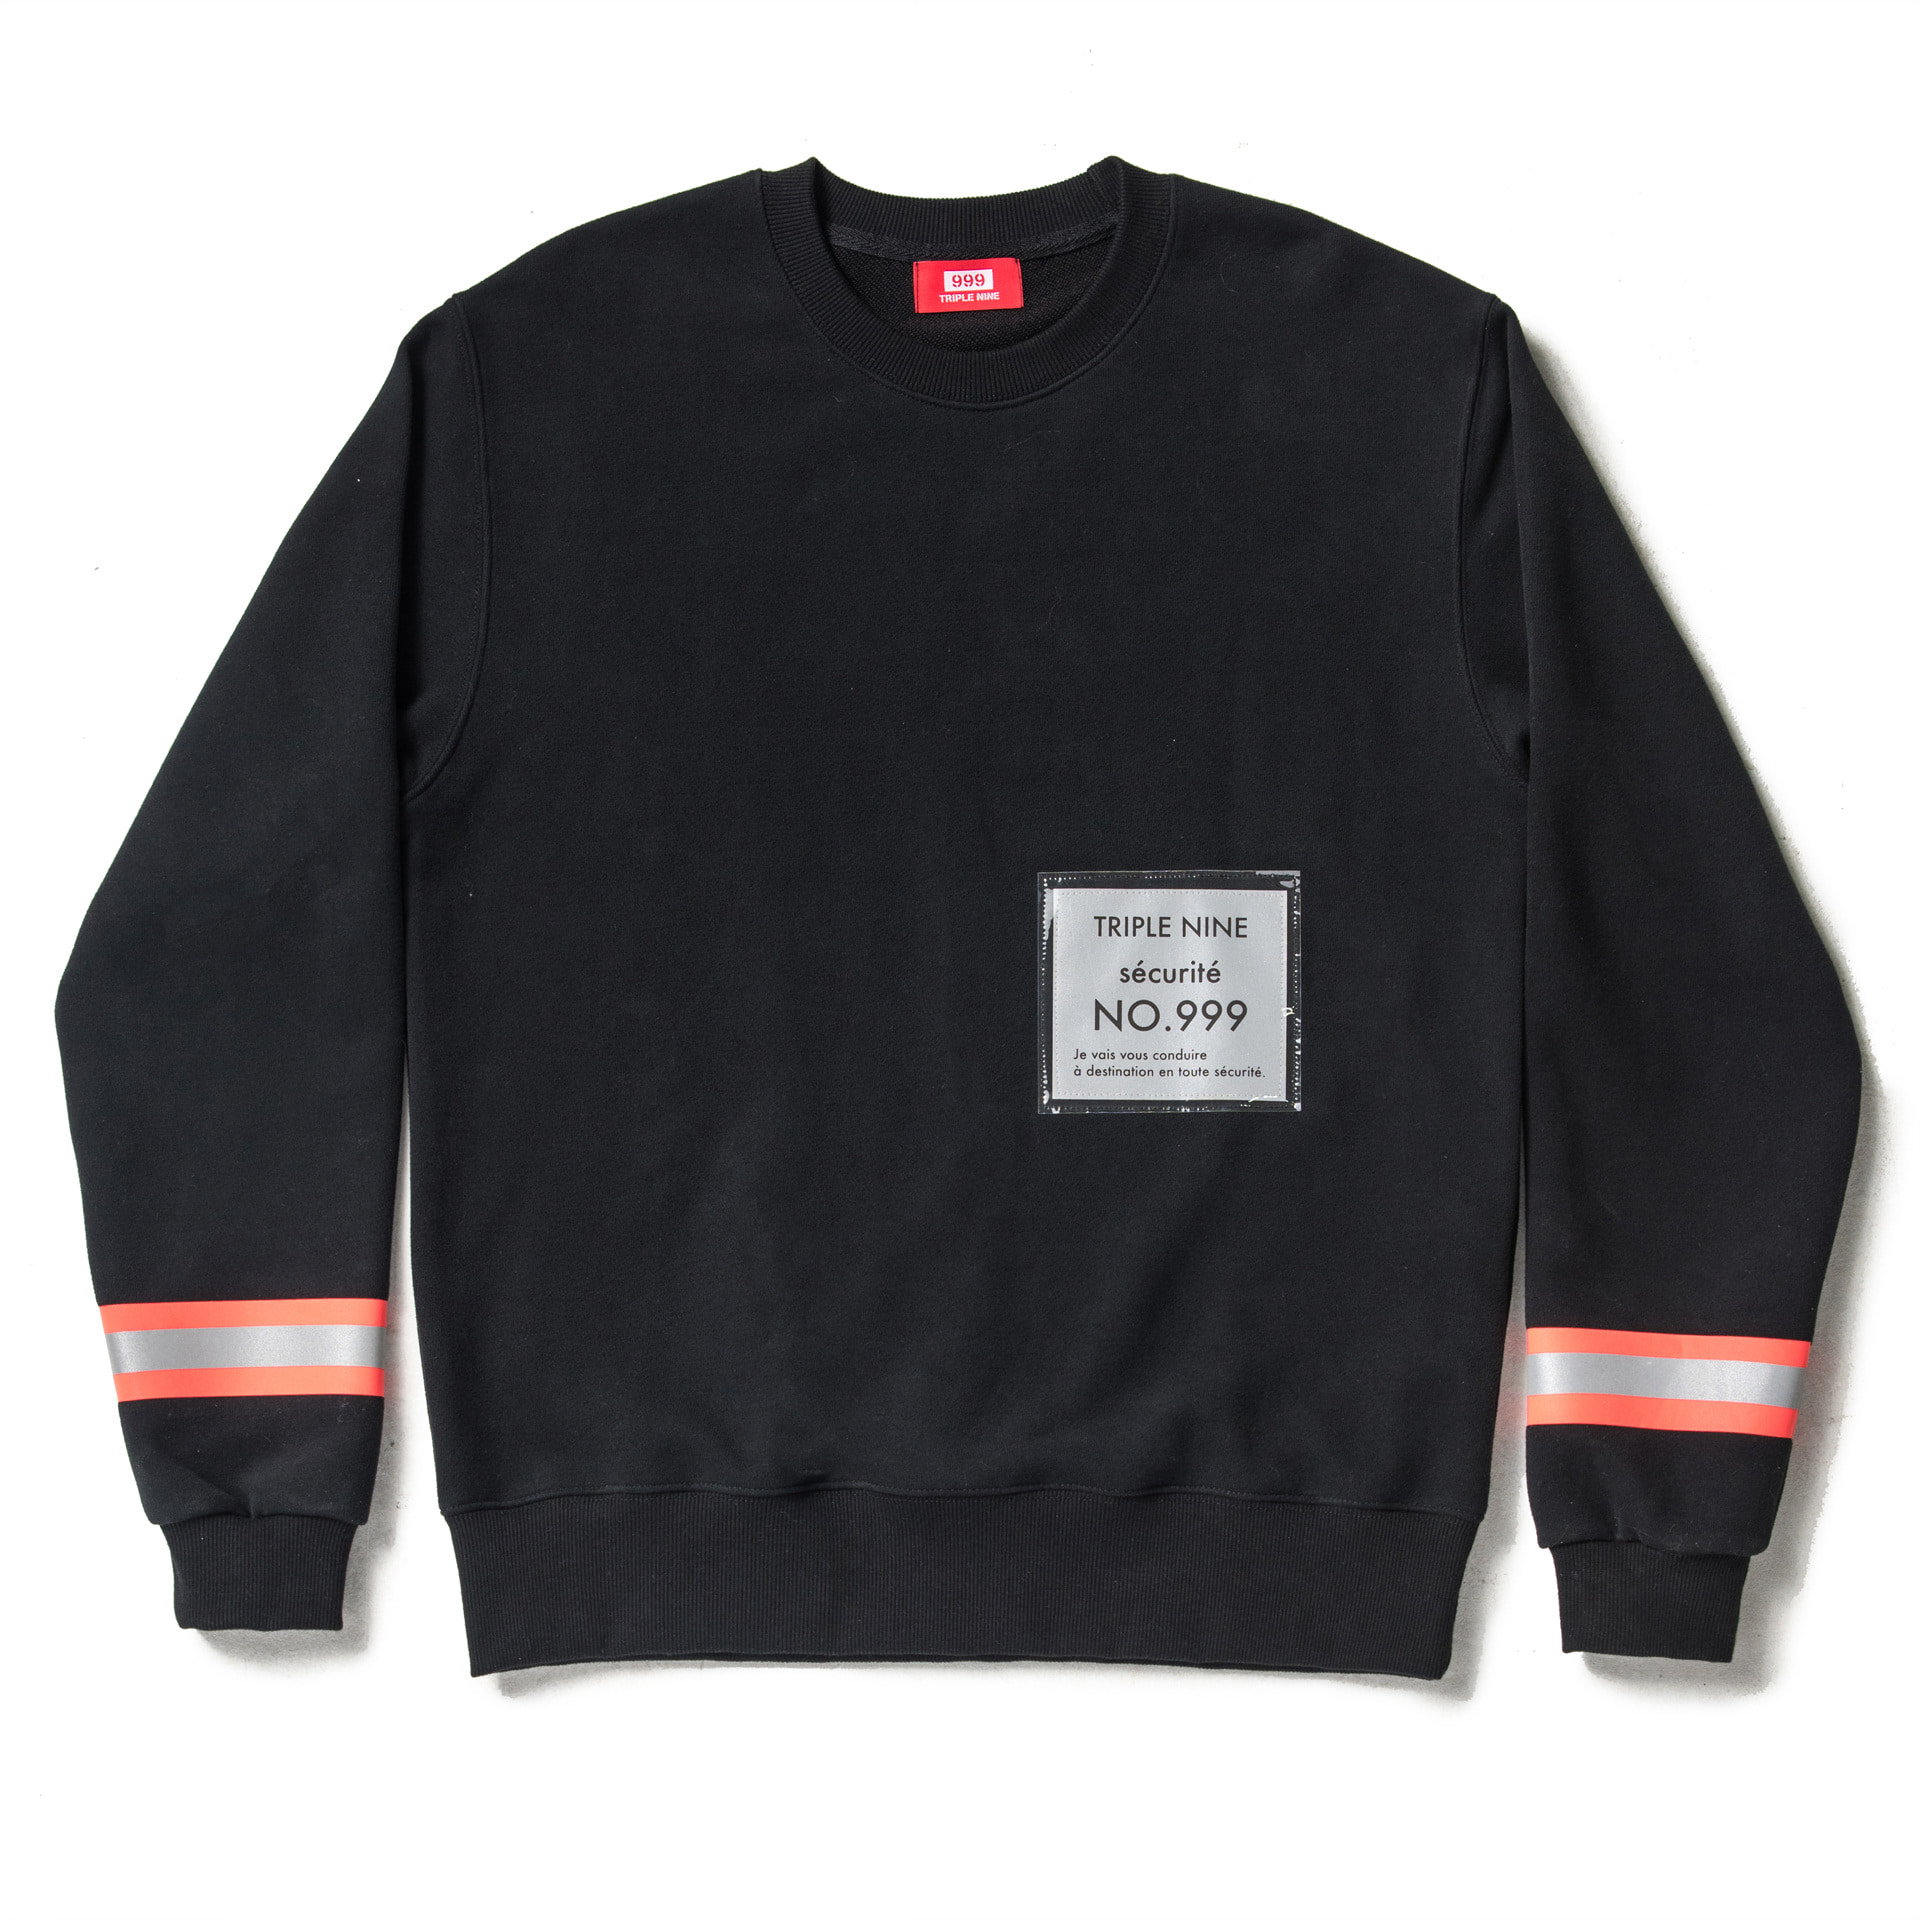 Sécurité Sweat Shirt (Black)